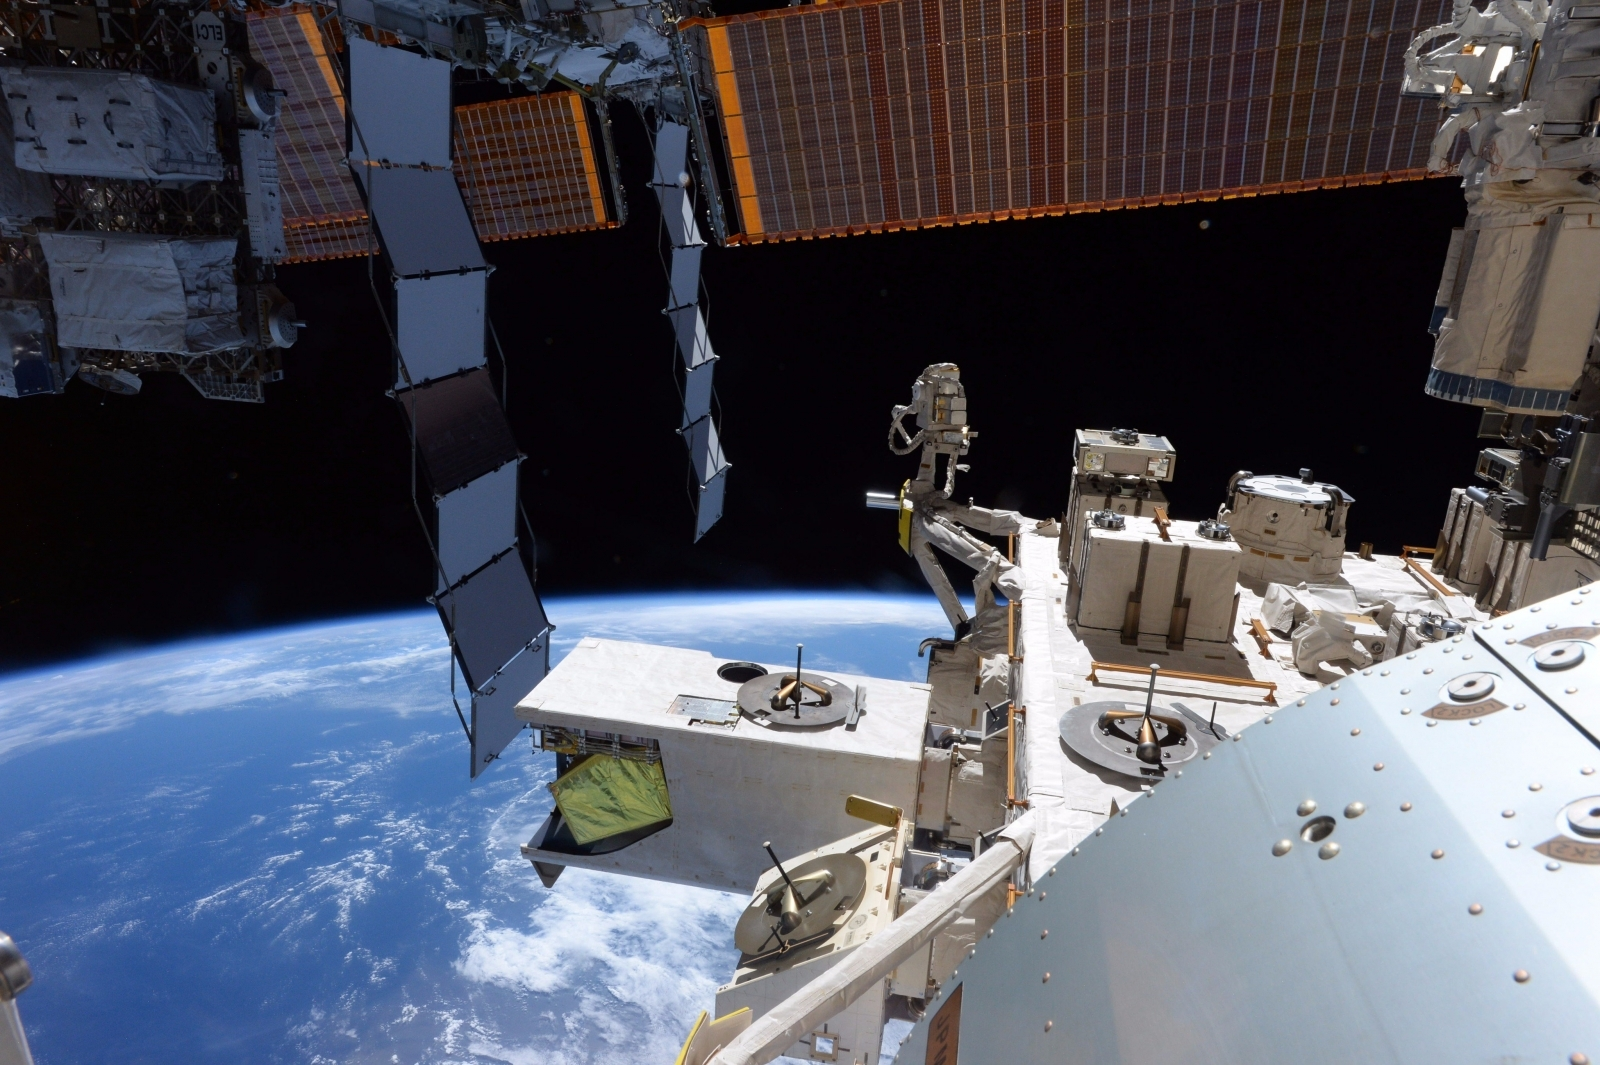 Outer space 360-degree video